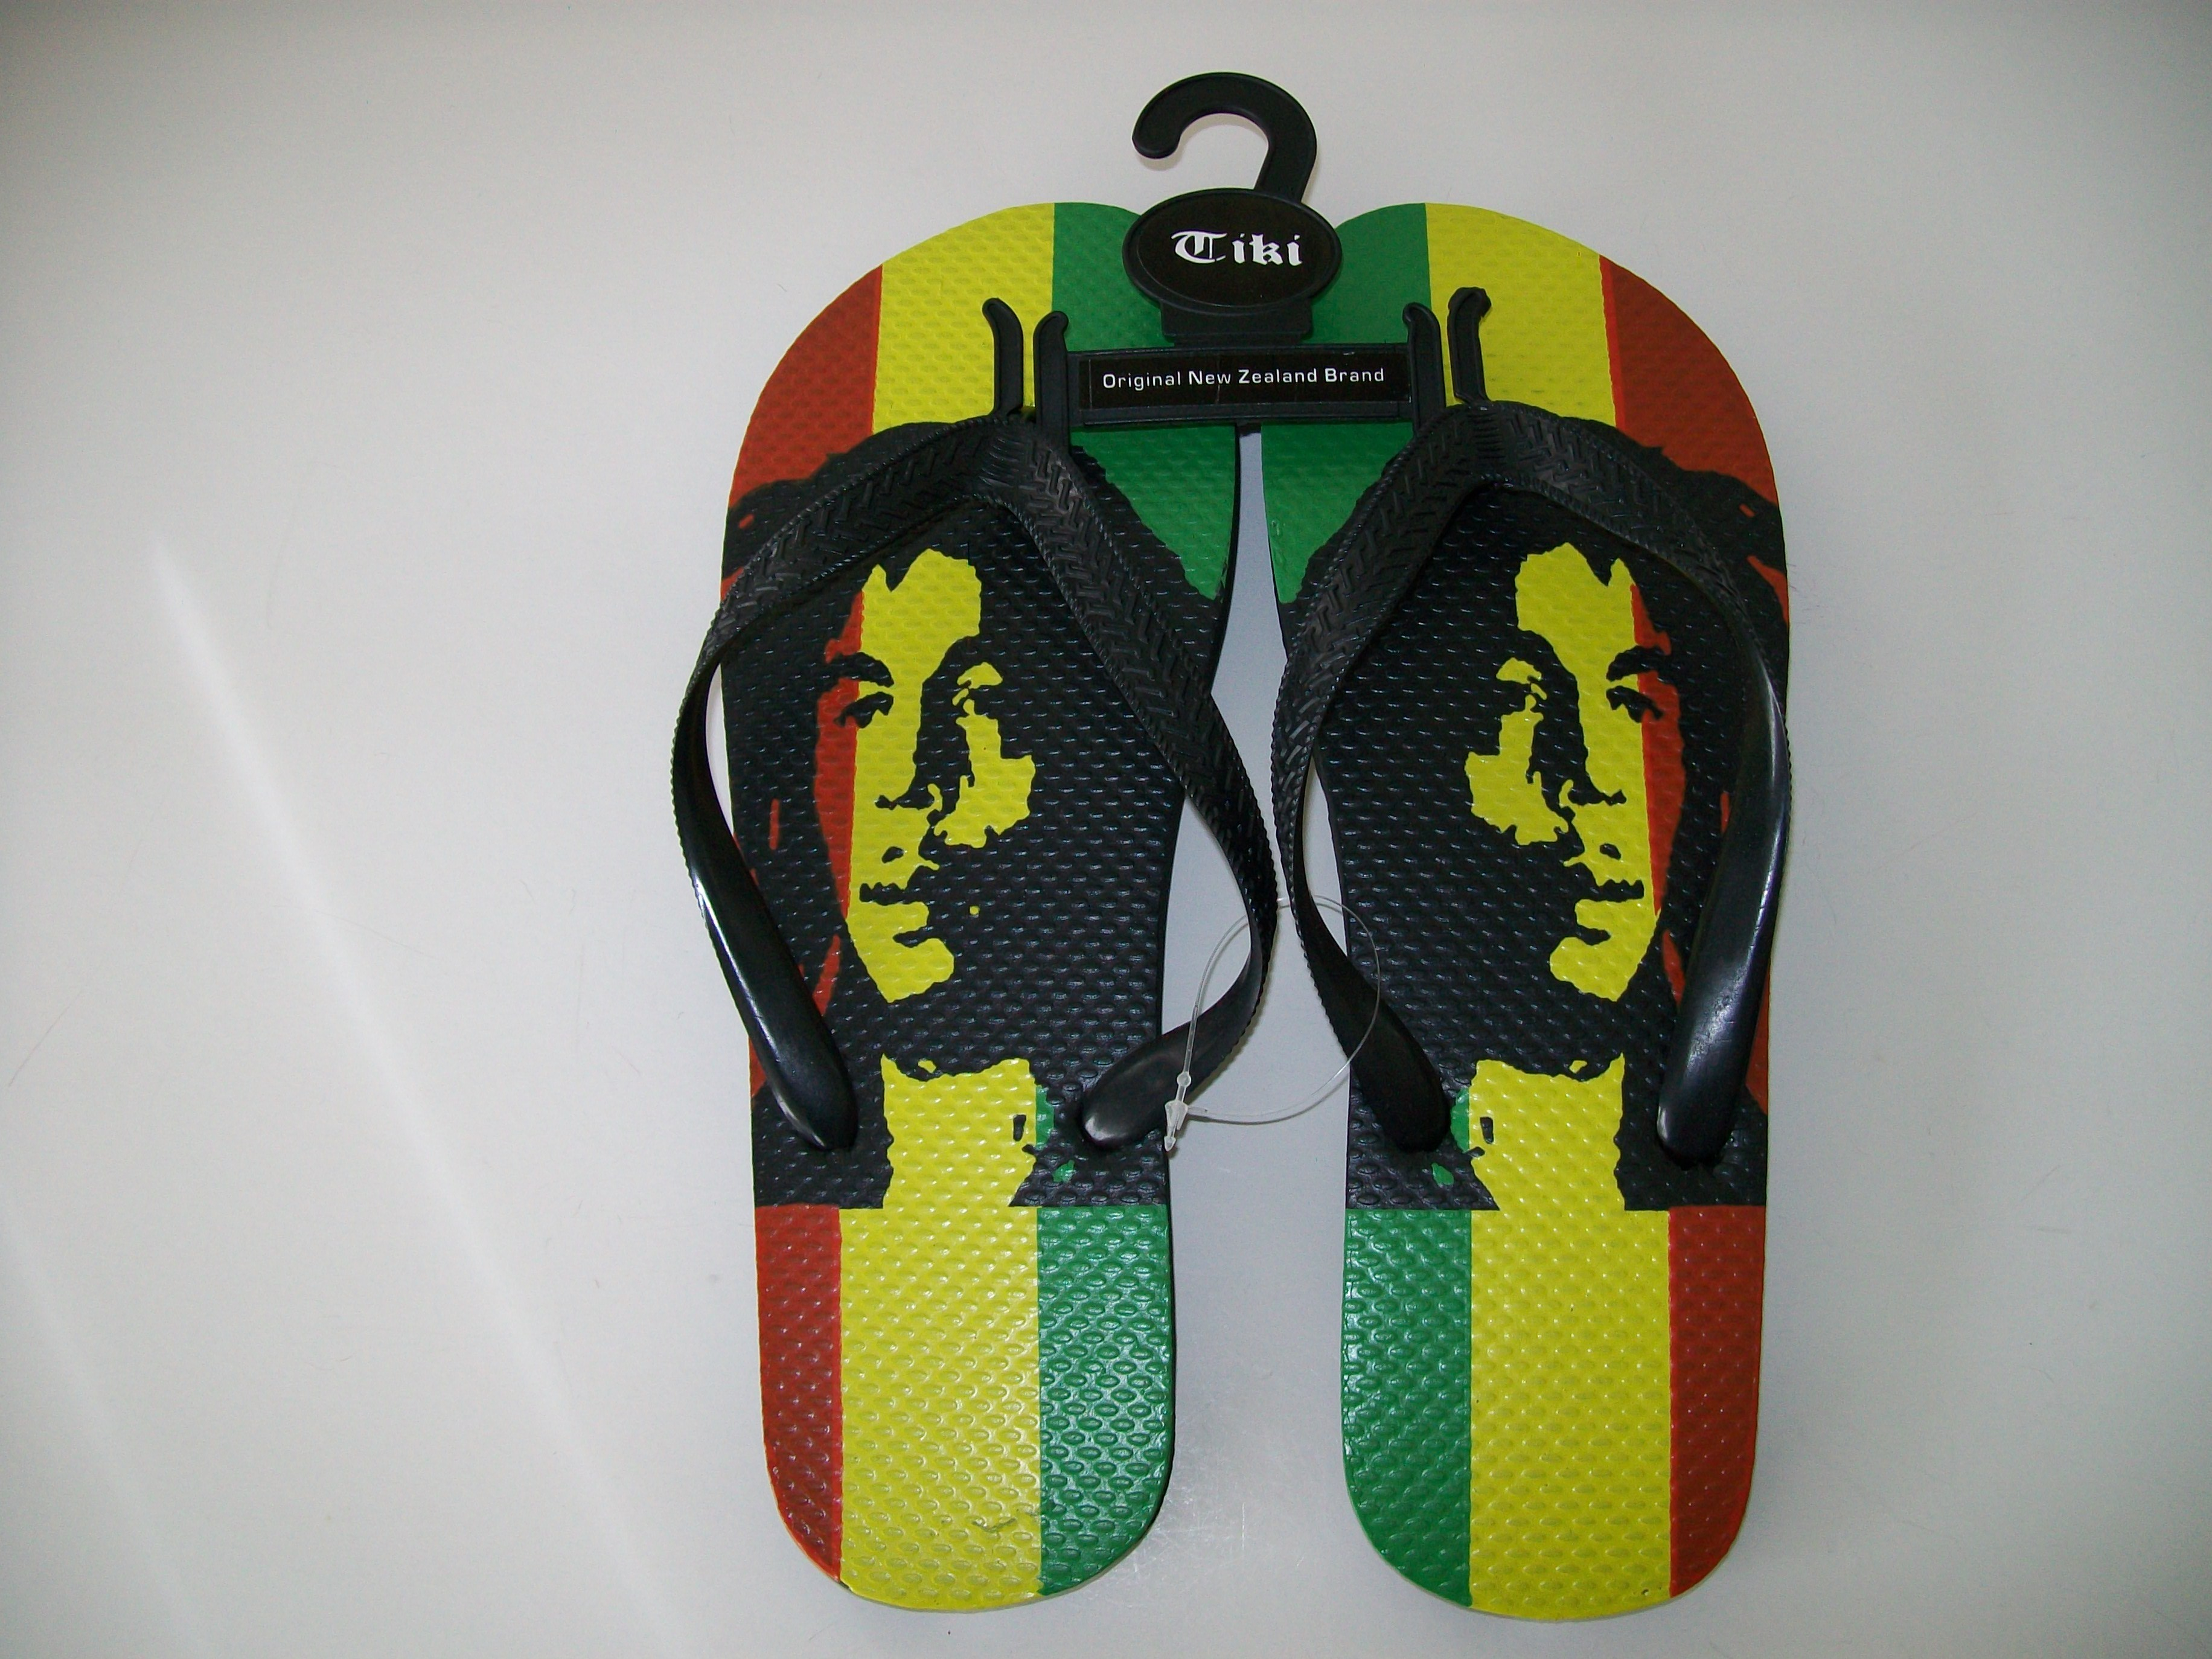 RASTA - sizes - small (US 7 - 9) medium (US 9 - 11) large (US 11 - 13) - Per Pair